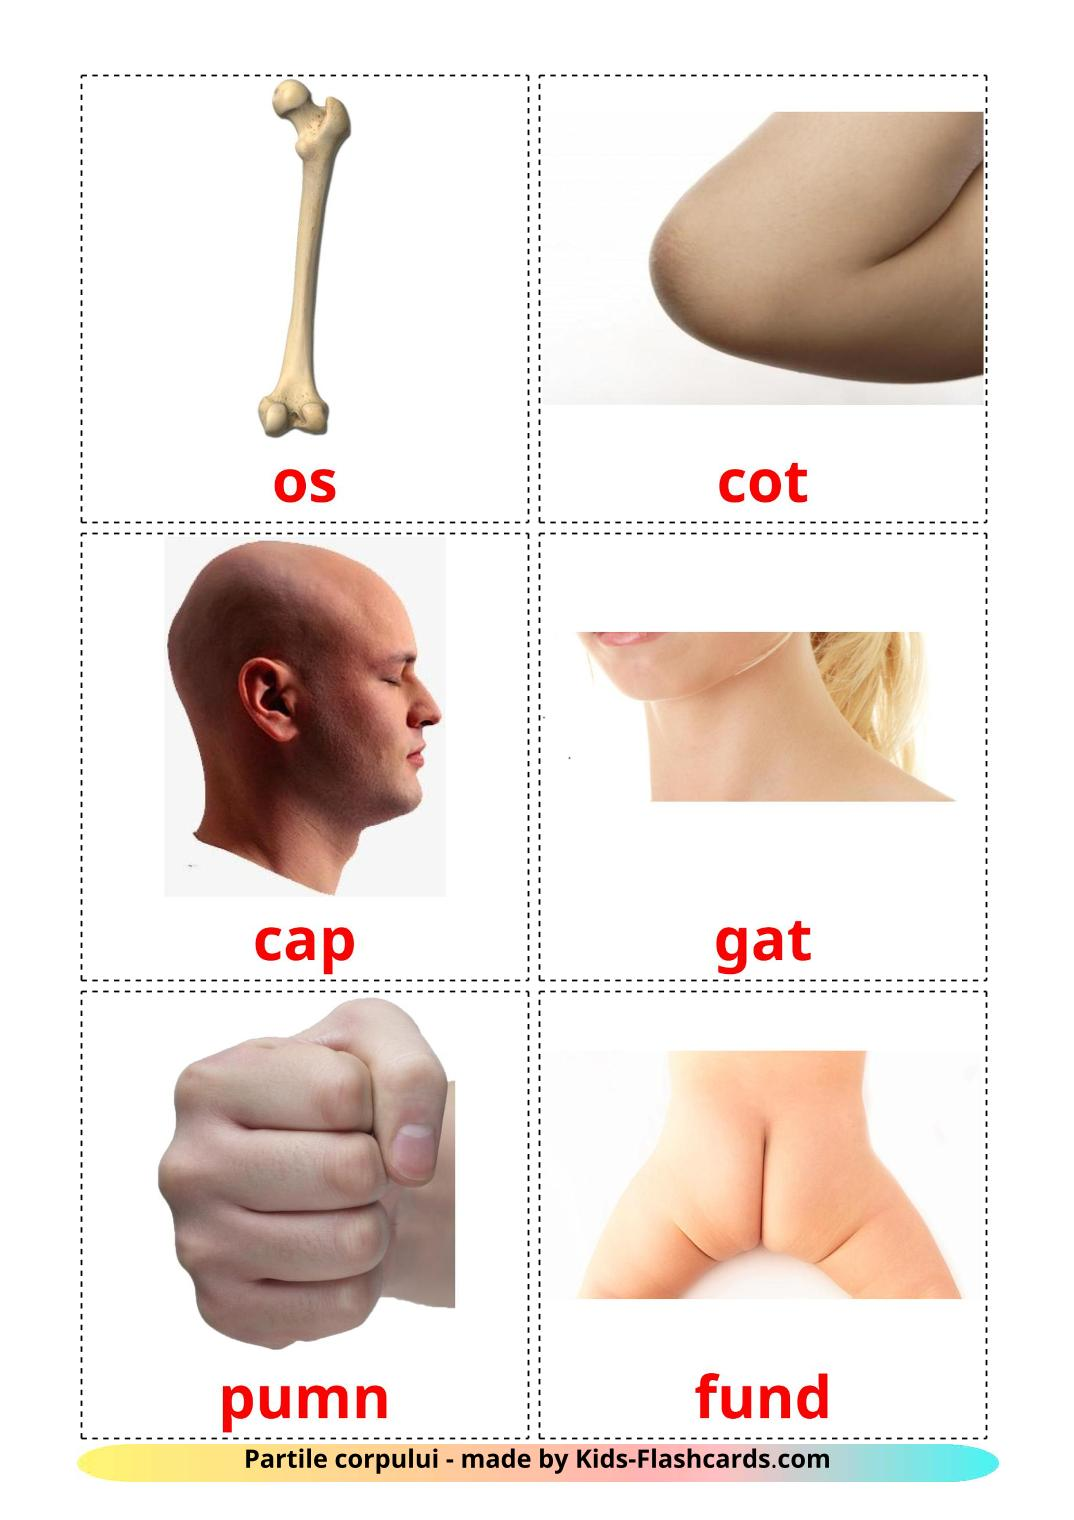 Body Parts - 26 Free Printable romanian Flashcards